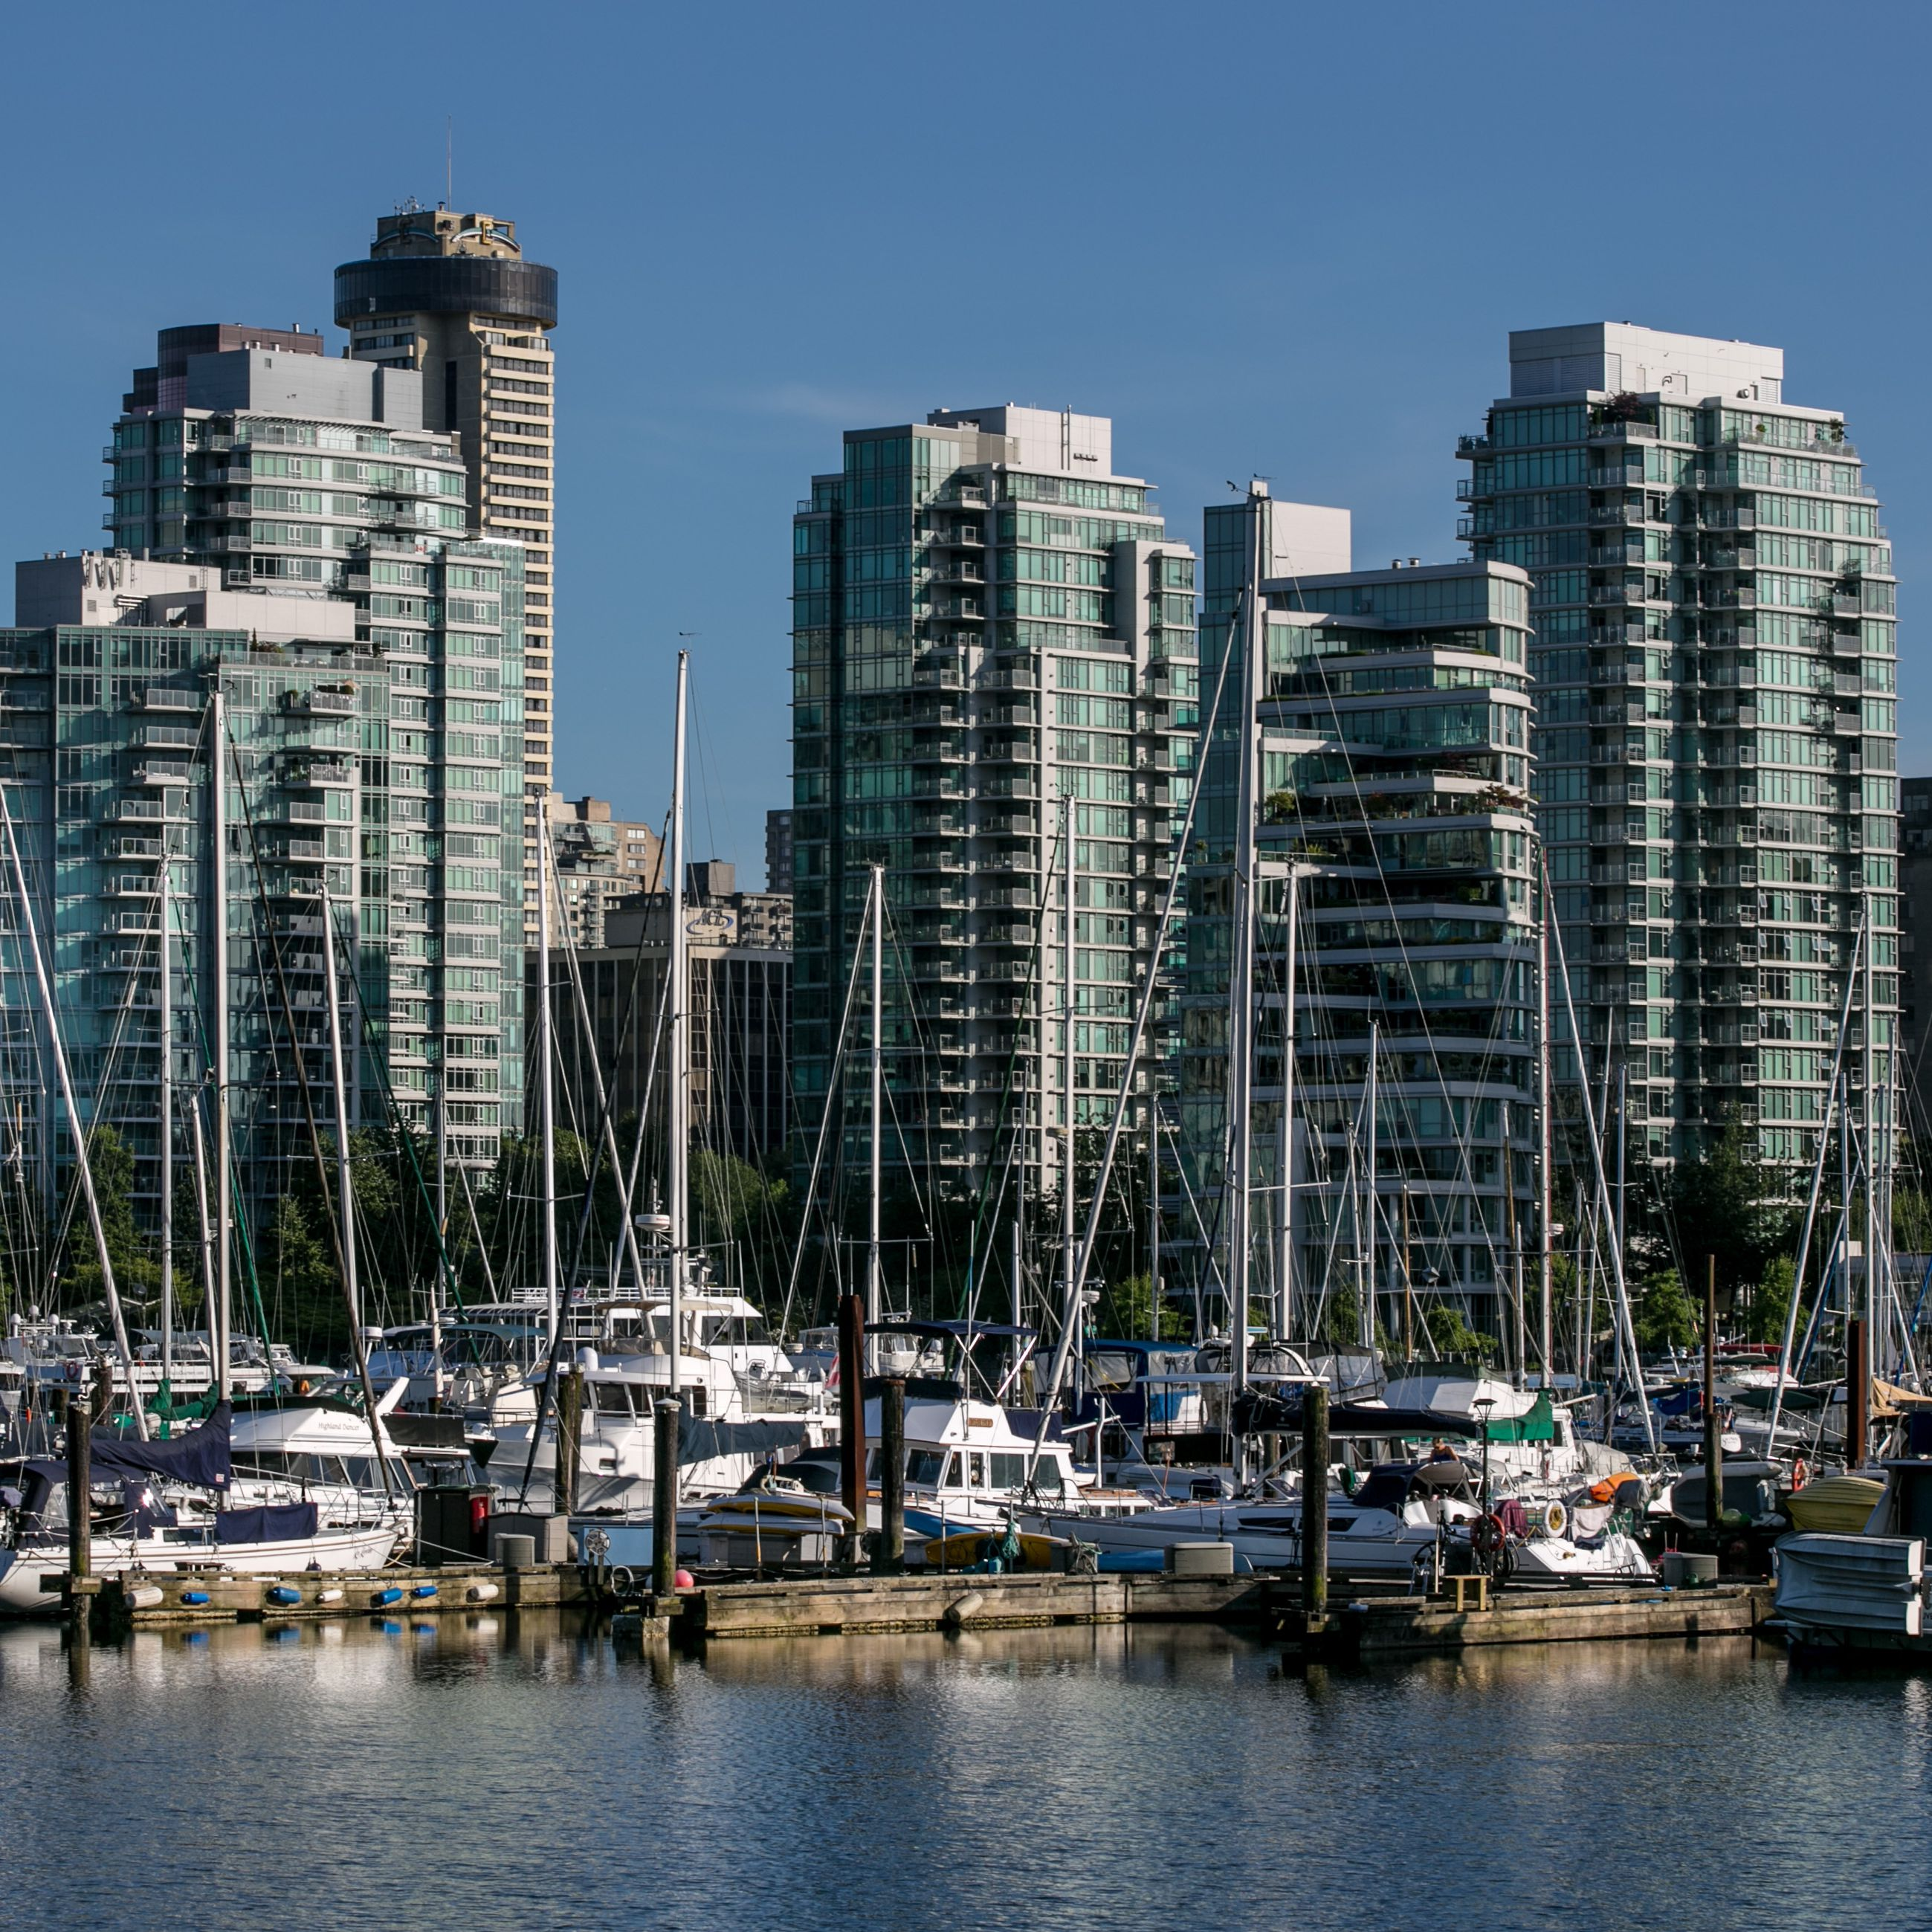 The Top 10 Things to Do in Coal Harbour, Vancouver